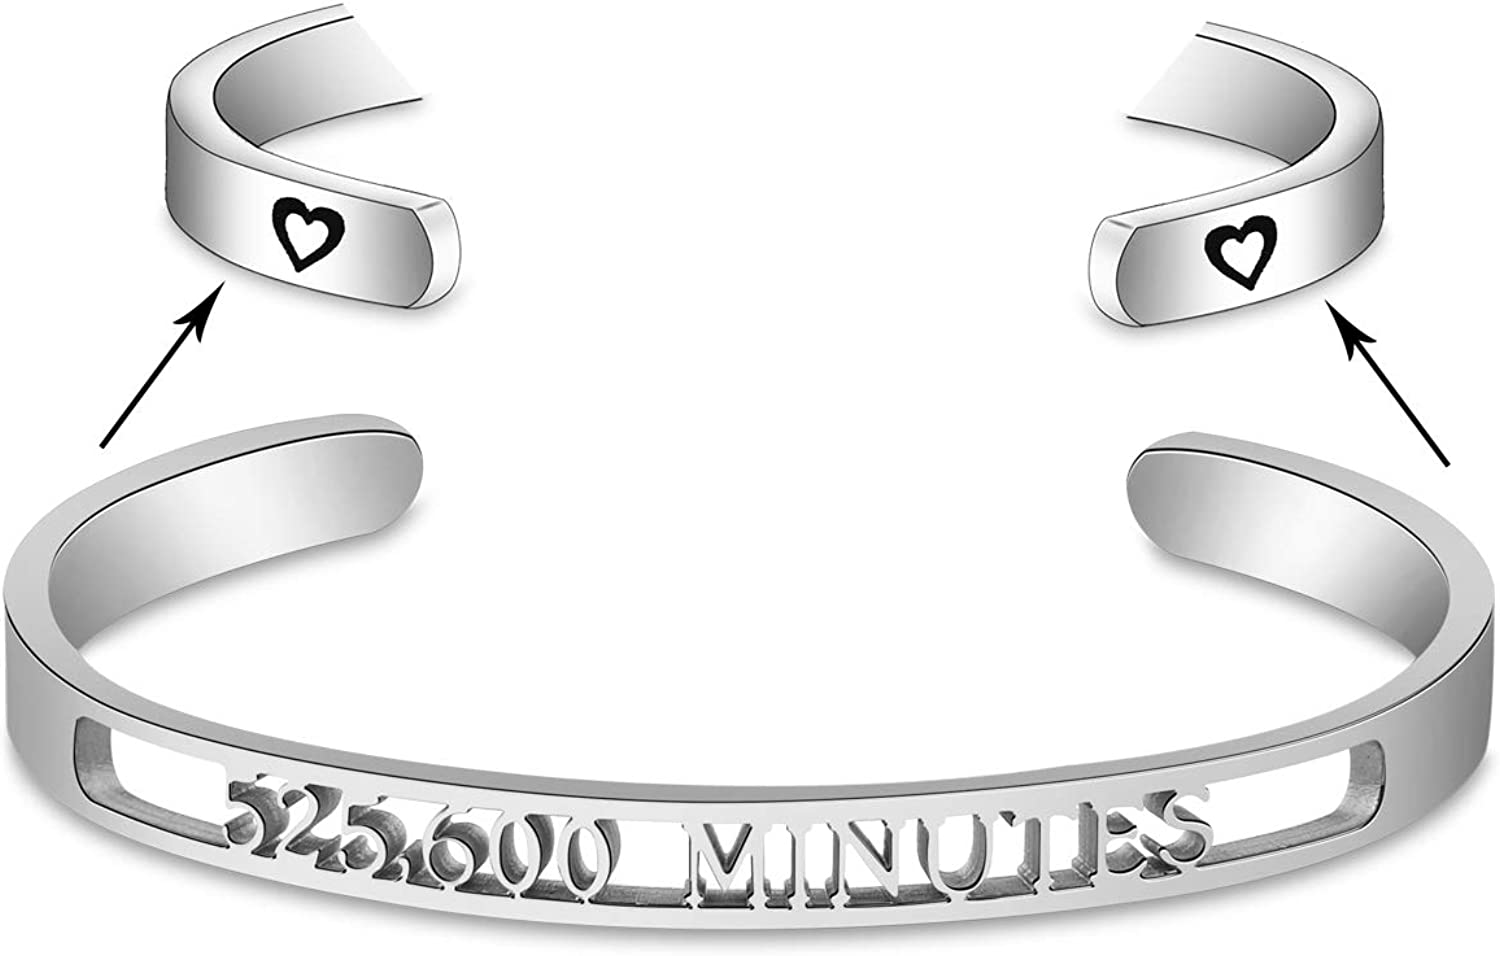 SEIRAA Rent Season Of Love 525,600 Minutes Cuff Bangle Inspired Bracelet Broadway Musical Jewelry Gift for Her